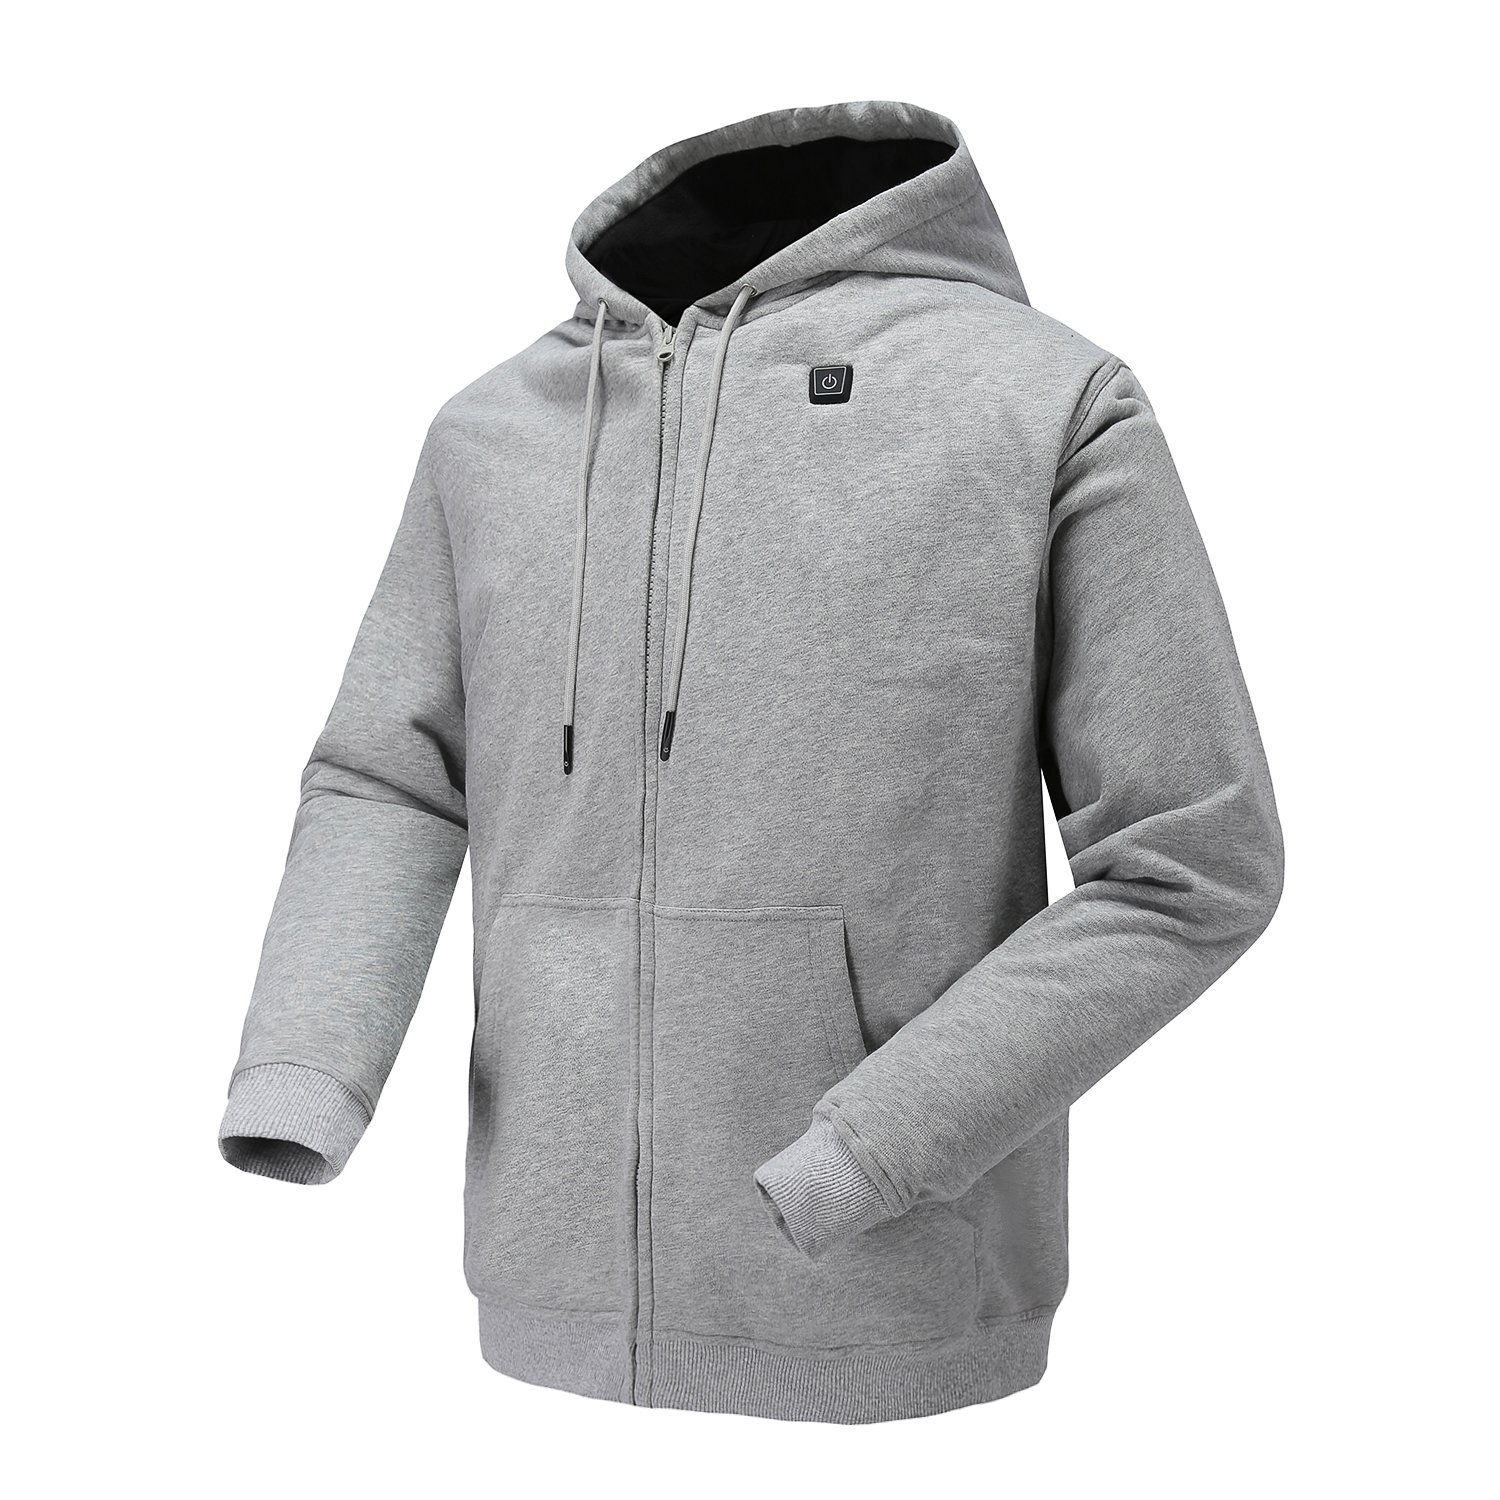 Colcham Heated Hoodie,Outdoor Work Heated Jacket Kit With Battery and Charger 7.4 V(Gray-S)